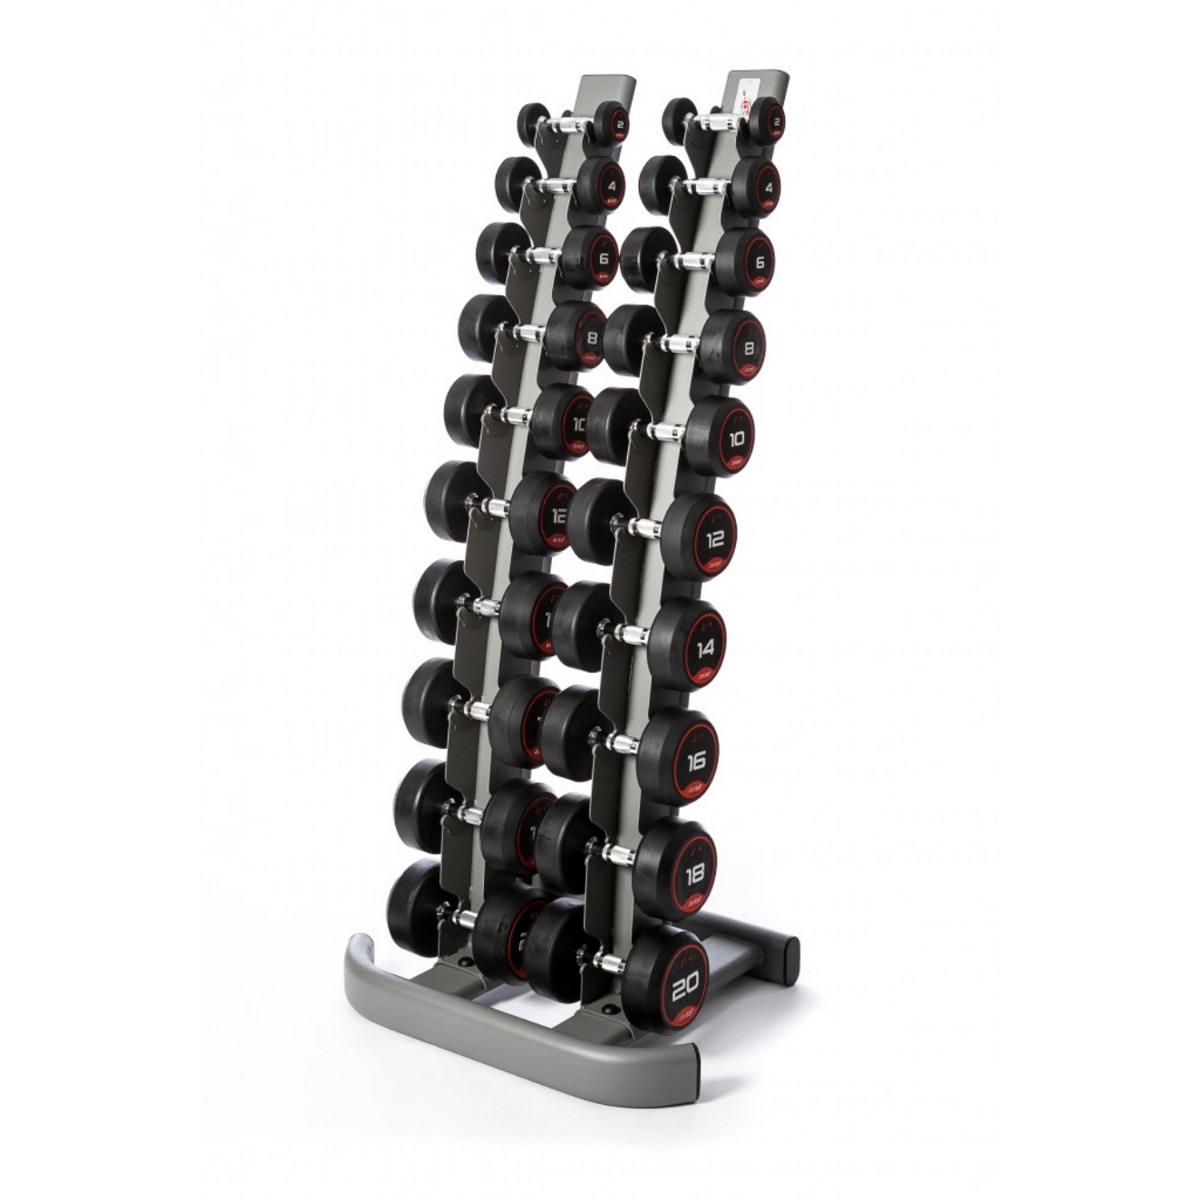 Jordan Rubber Dumbbell Set 2.5-30kg